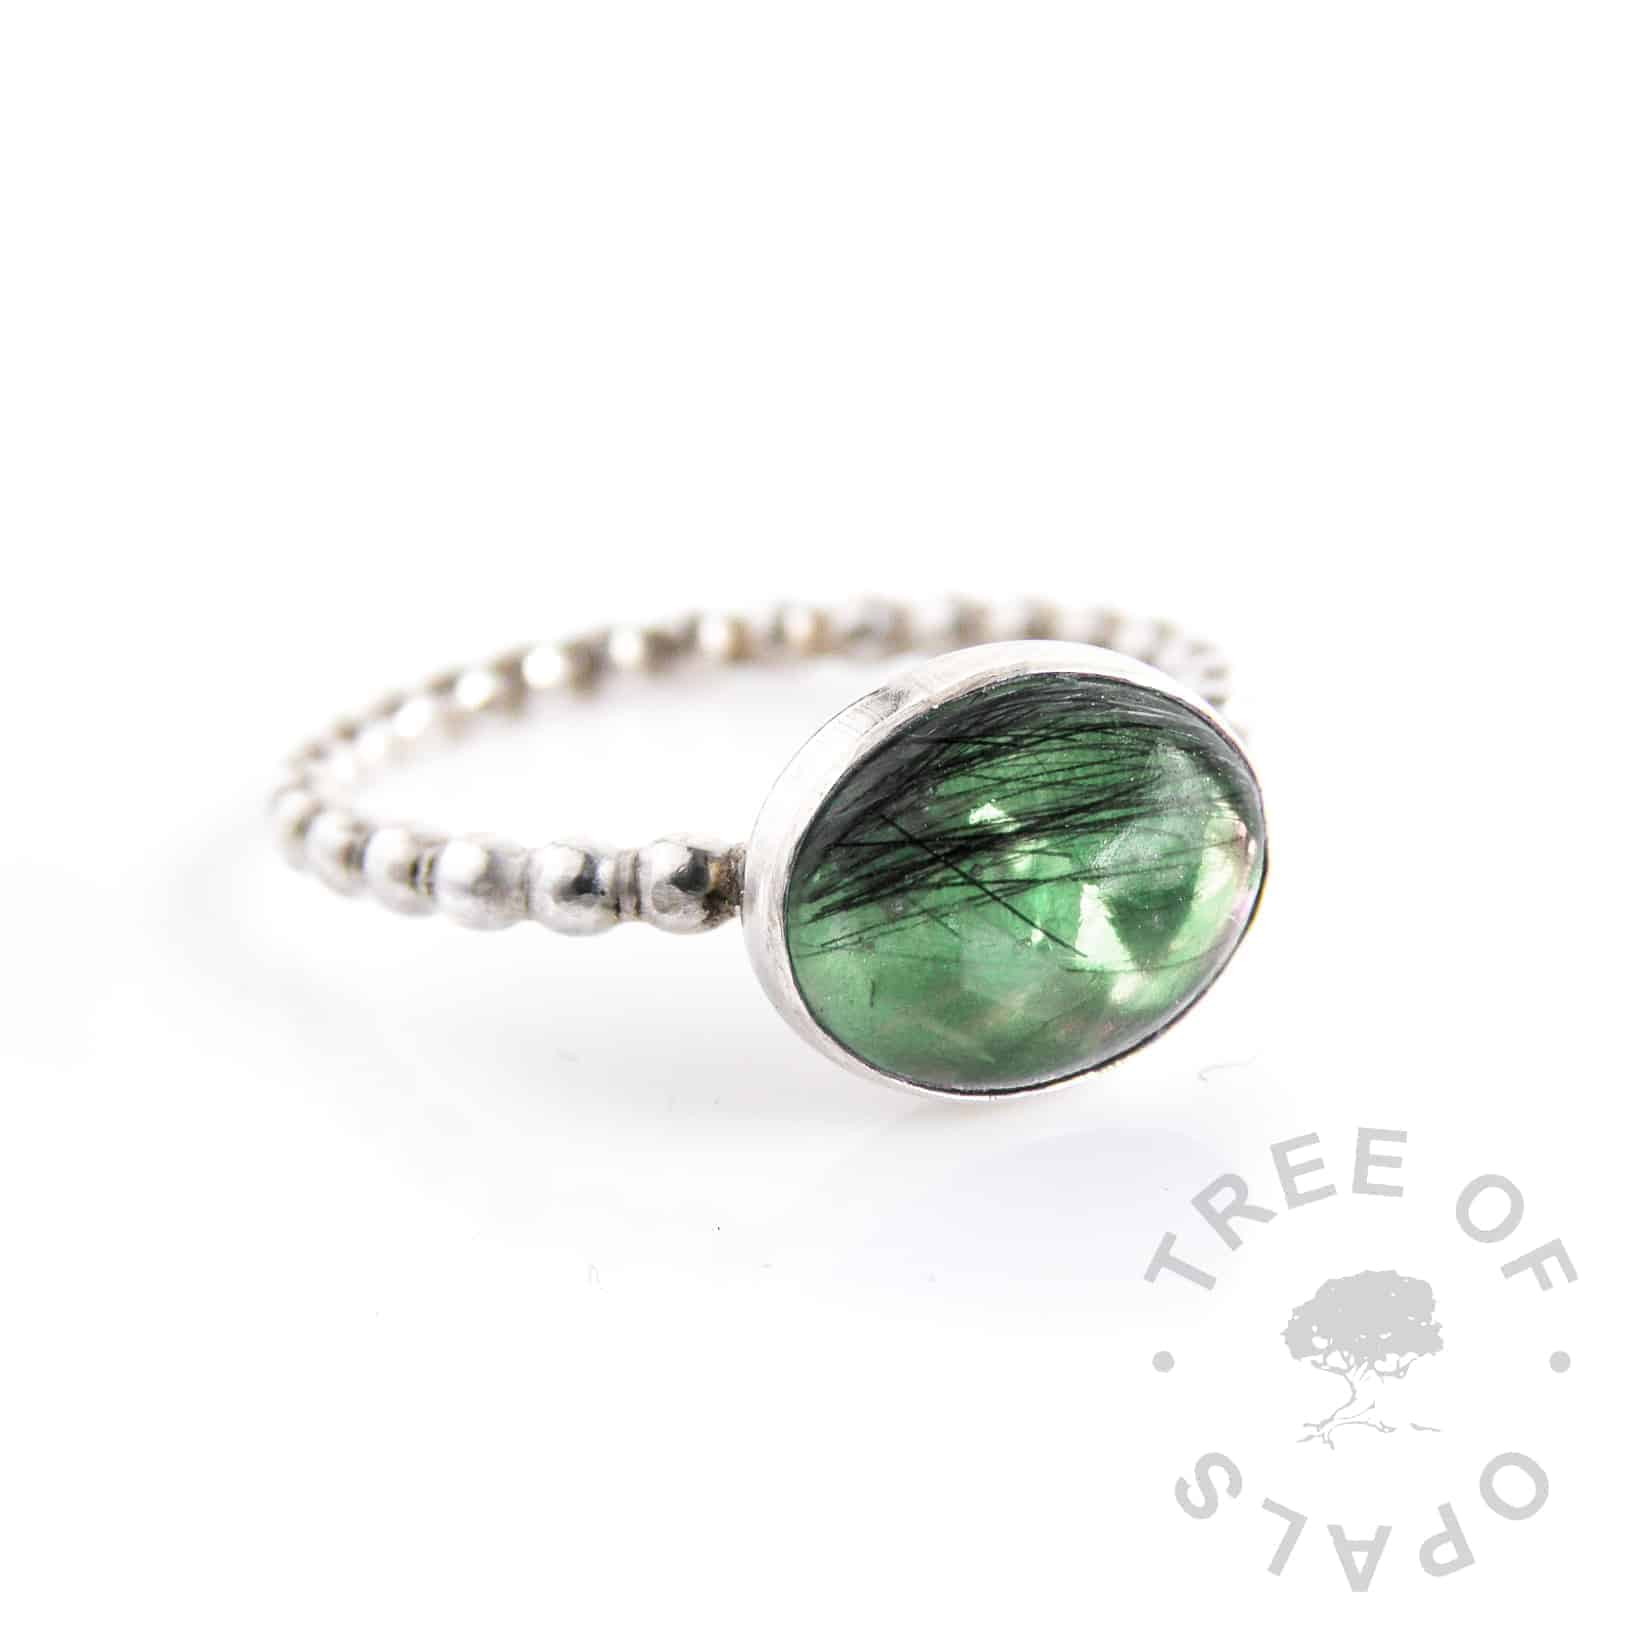 lock of hair ring with dark green opalescent flakes background on a bubble wire solid silver band and 10x8mm oval cabochon